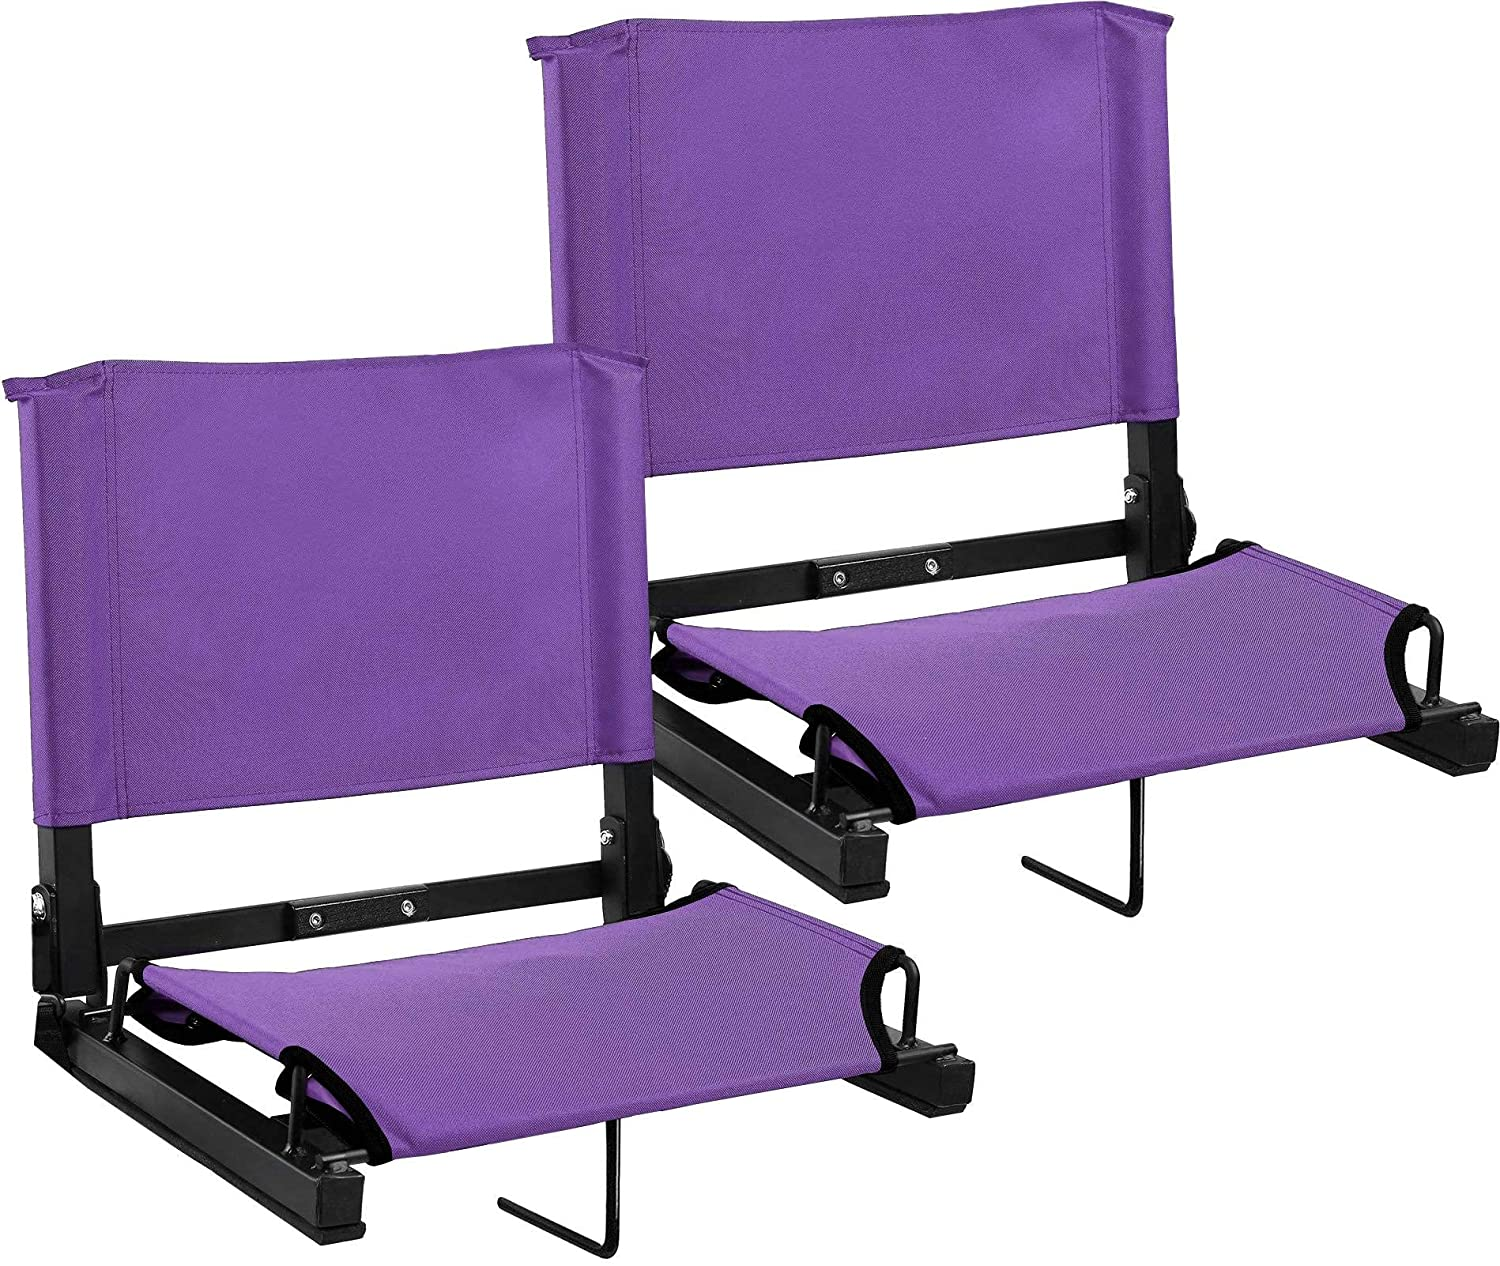 スポーツ無制限Stadium Seat Bleacher Seat  Purple, 2 Pack B07L36S9ML